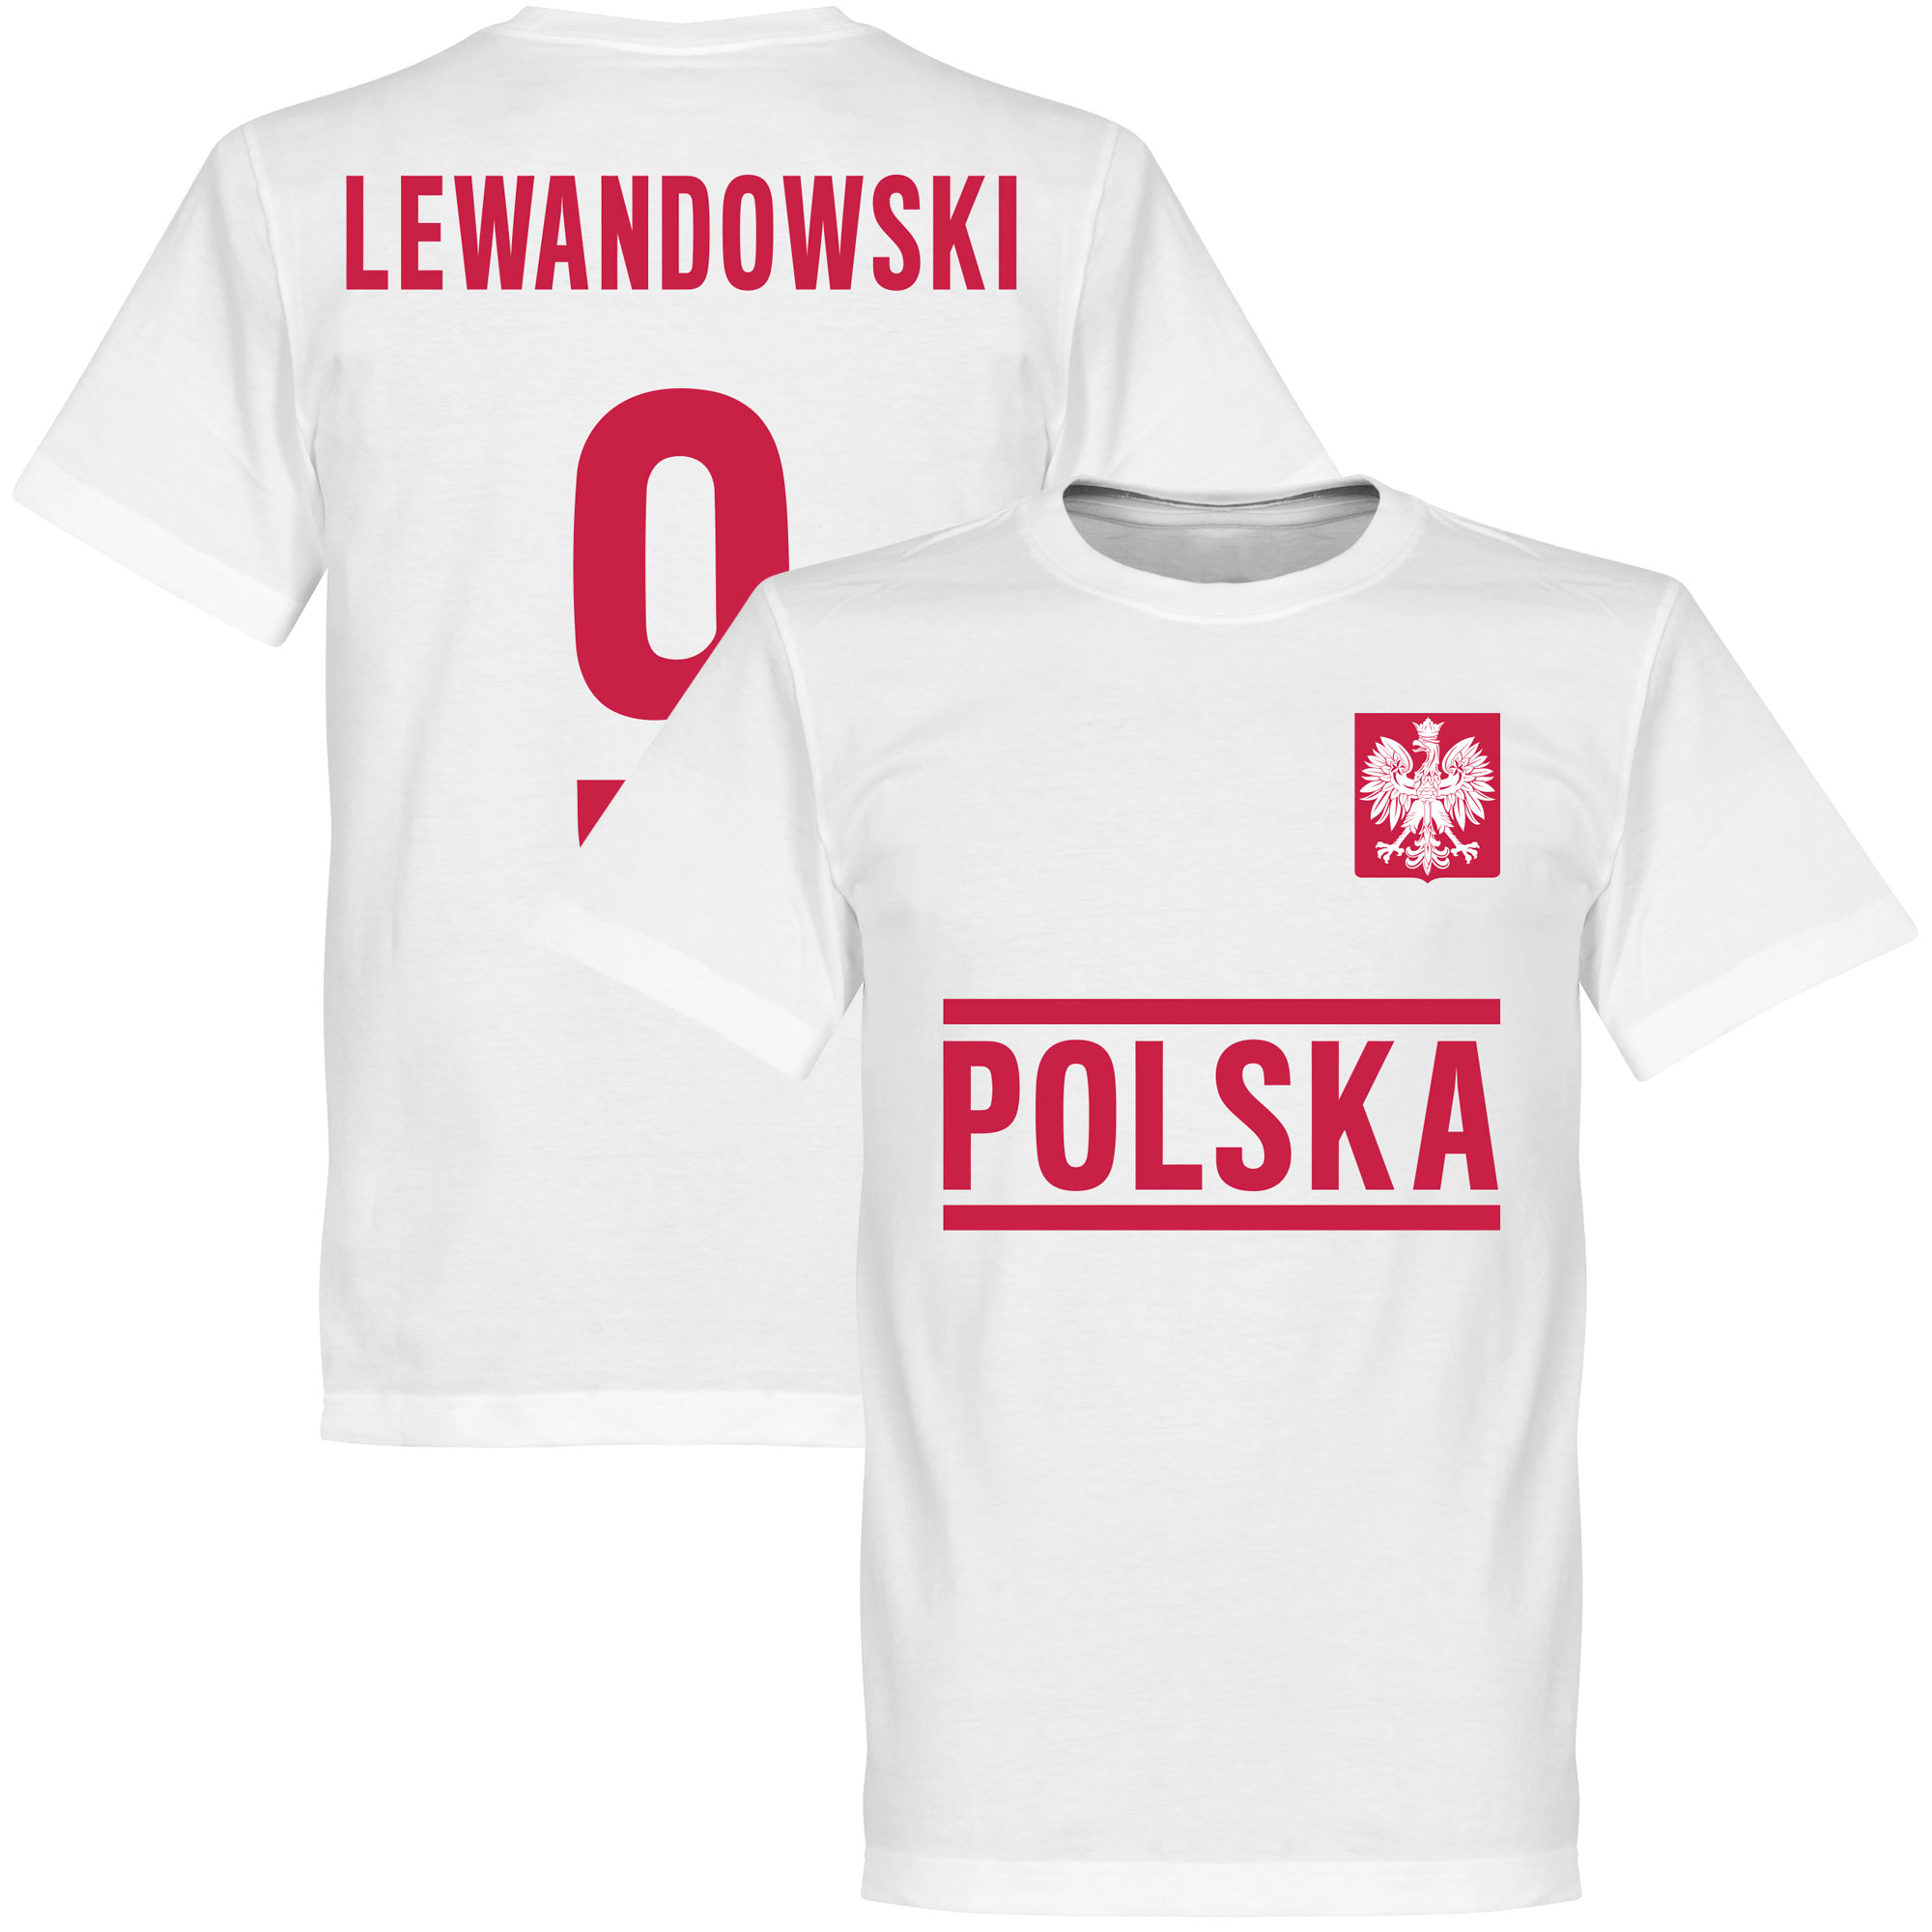 Poland Lewandowski Team Tee - White - S